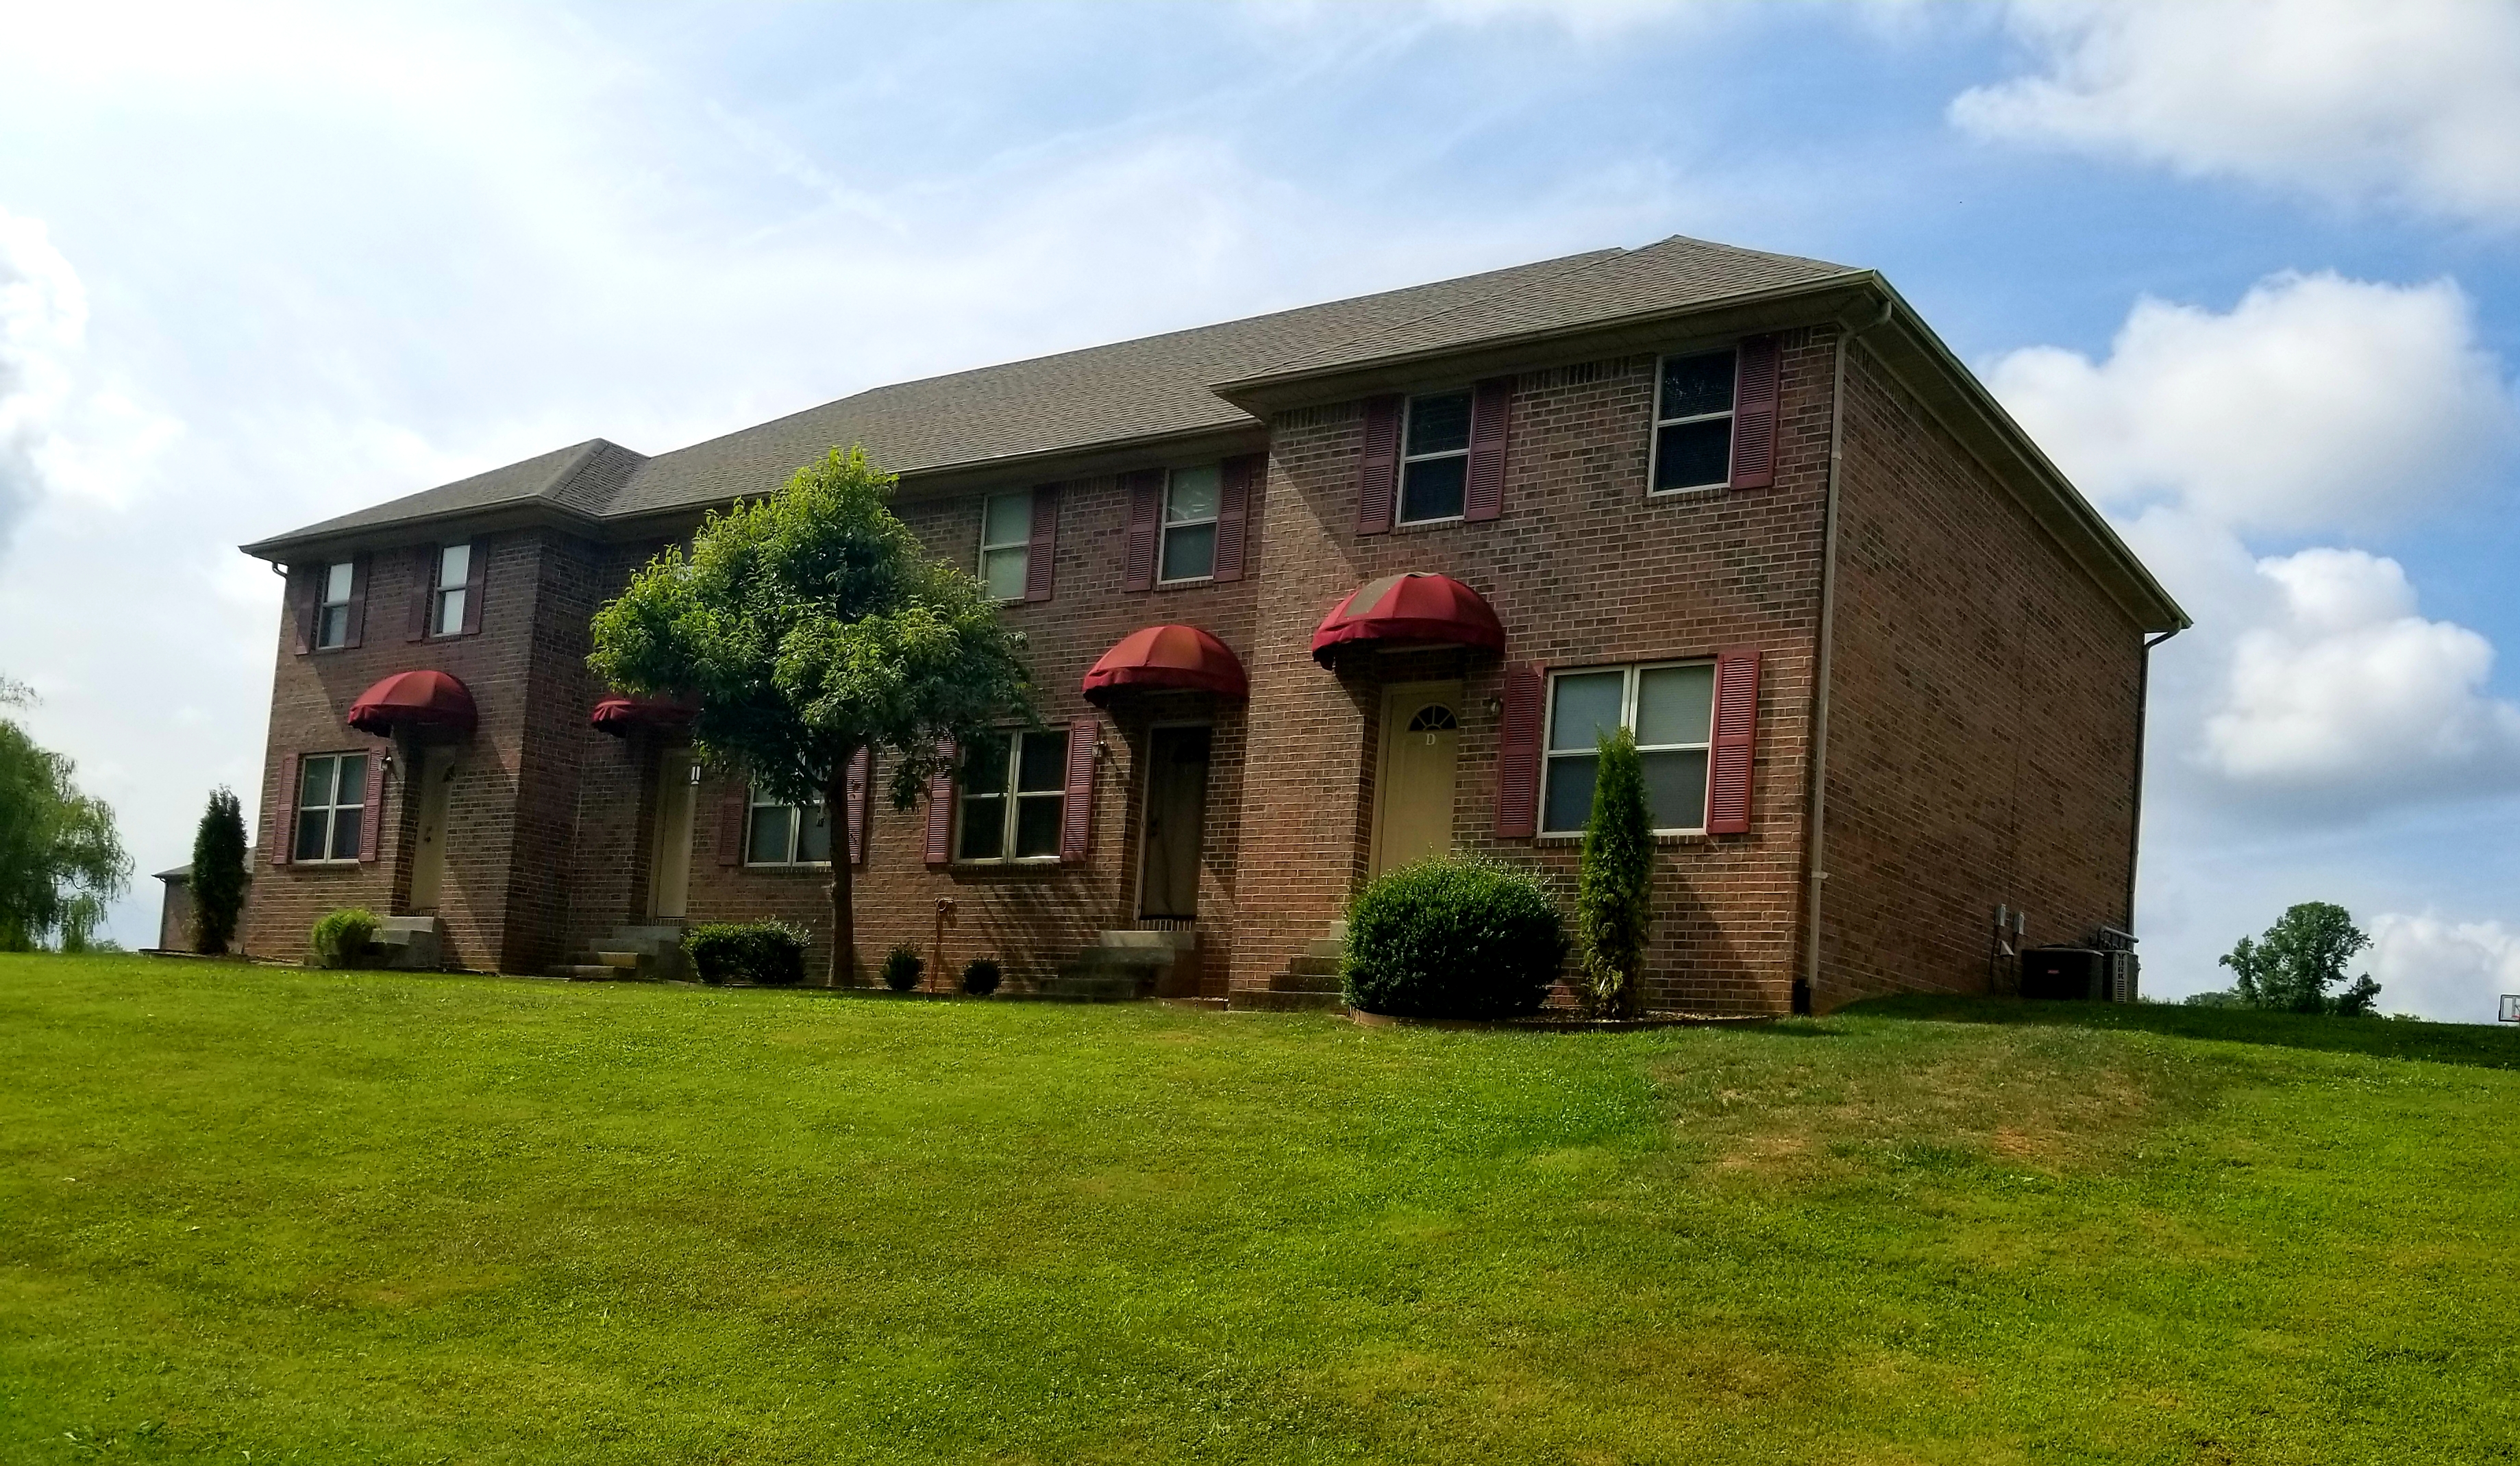 126 Candle Court Bowling Green, KY 42101